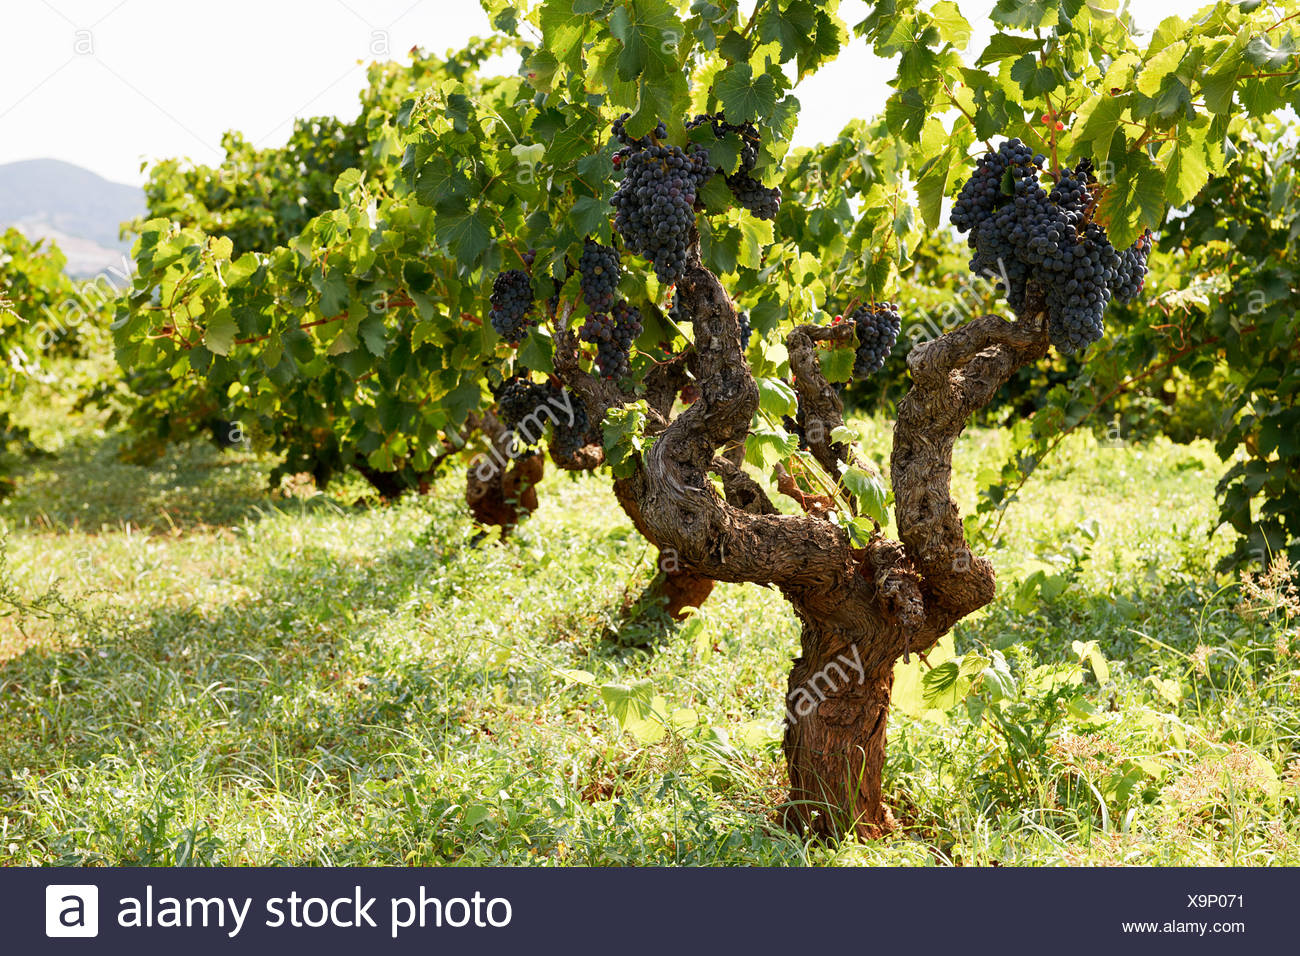 Grapes on a vine in a vineyard Stock Photo